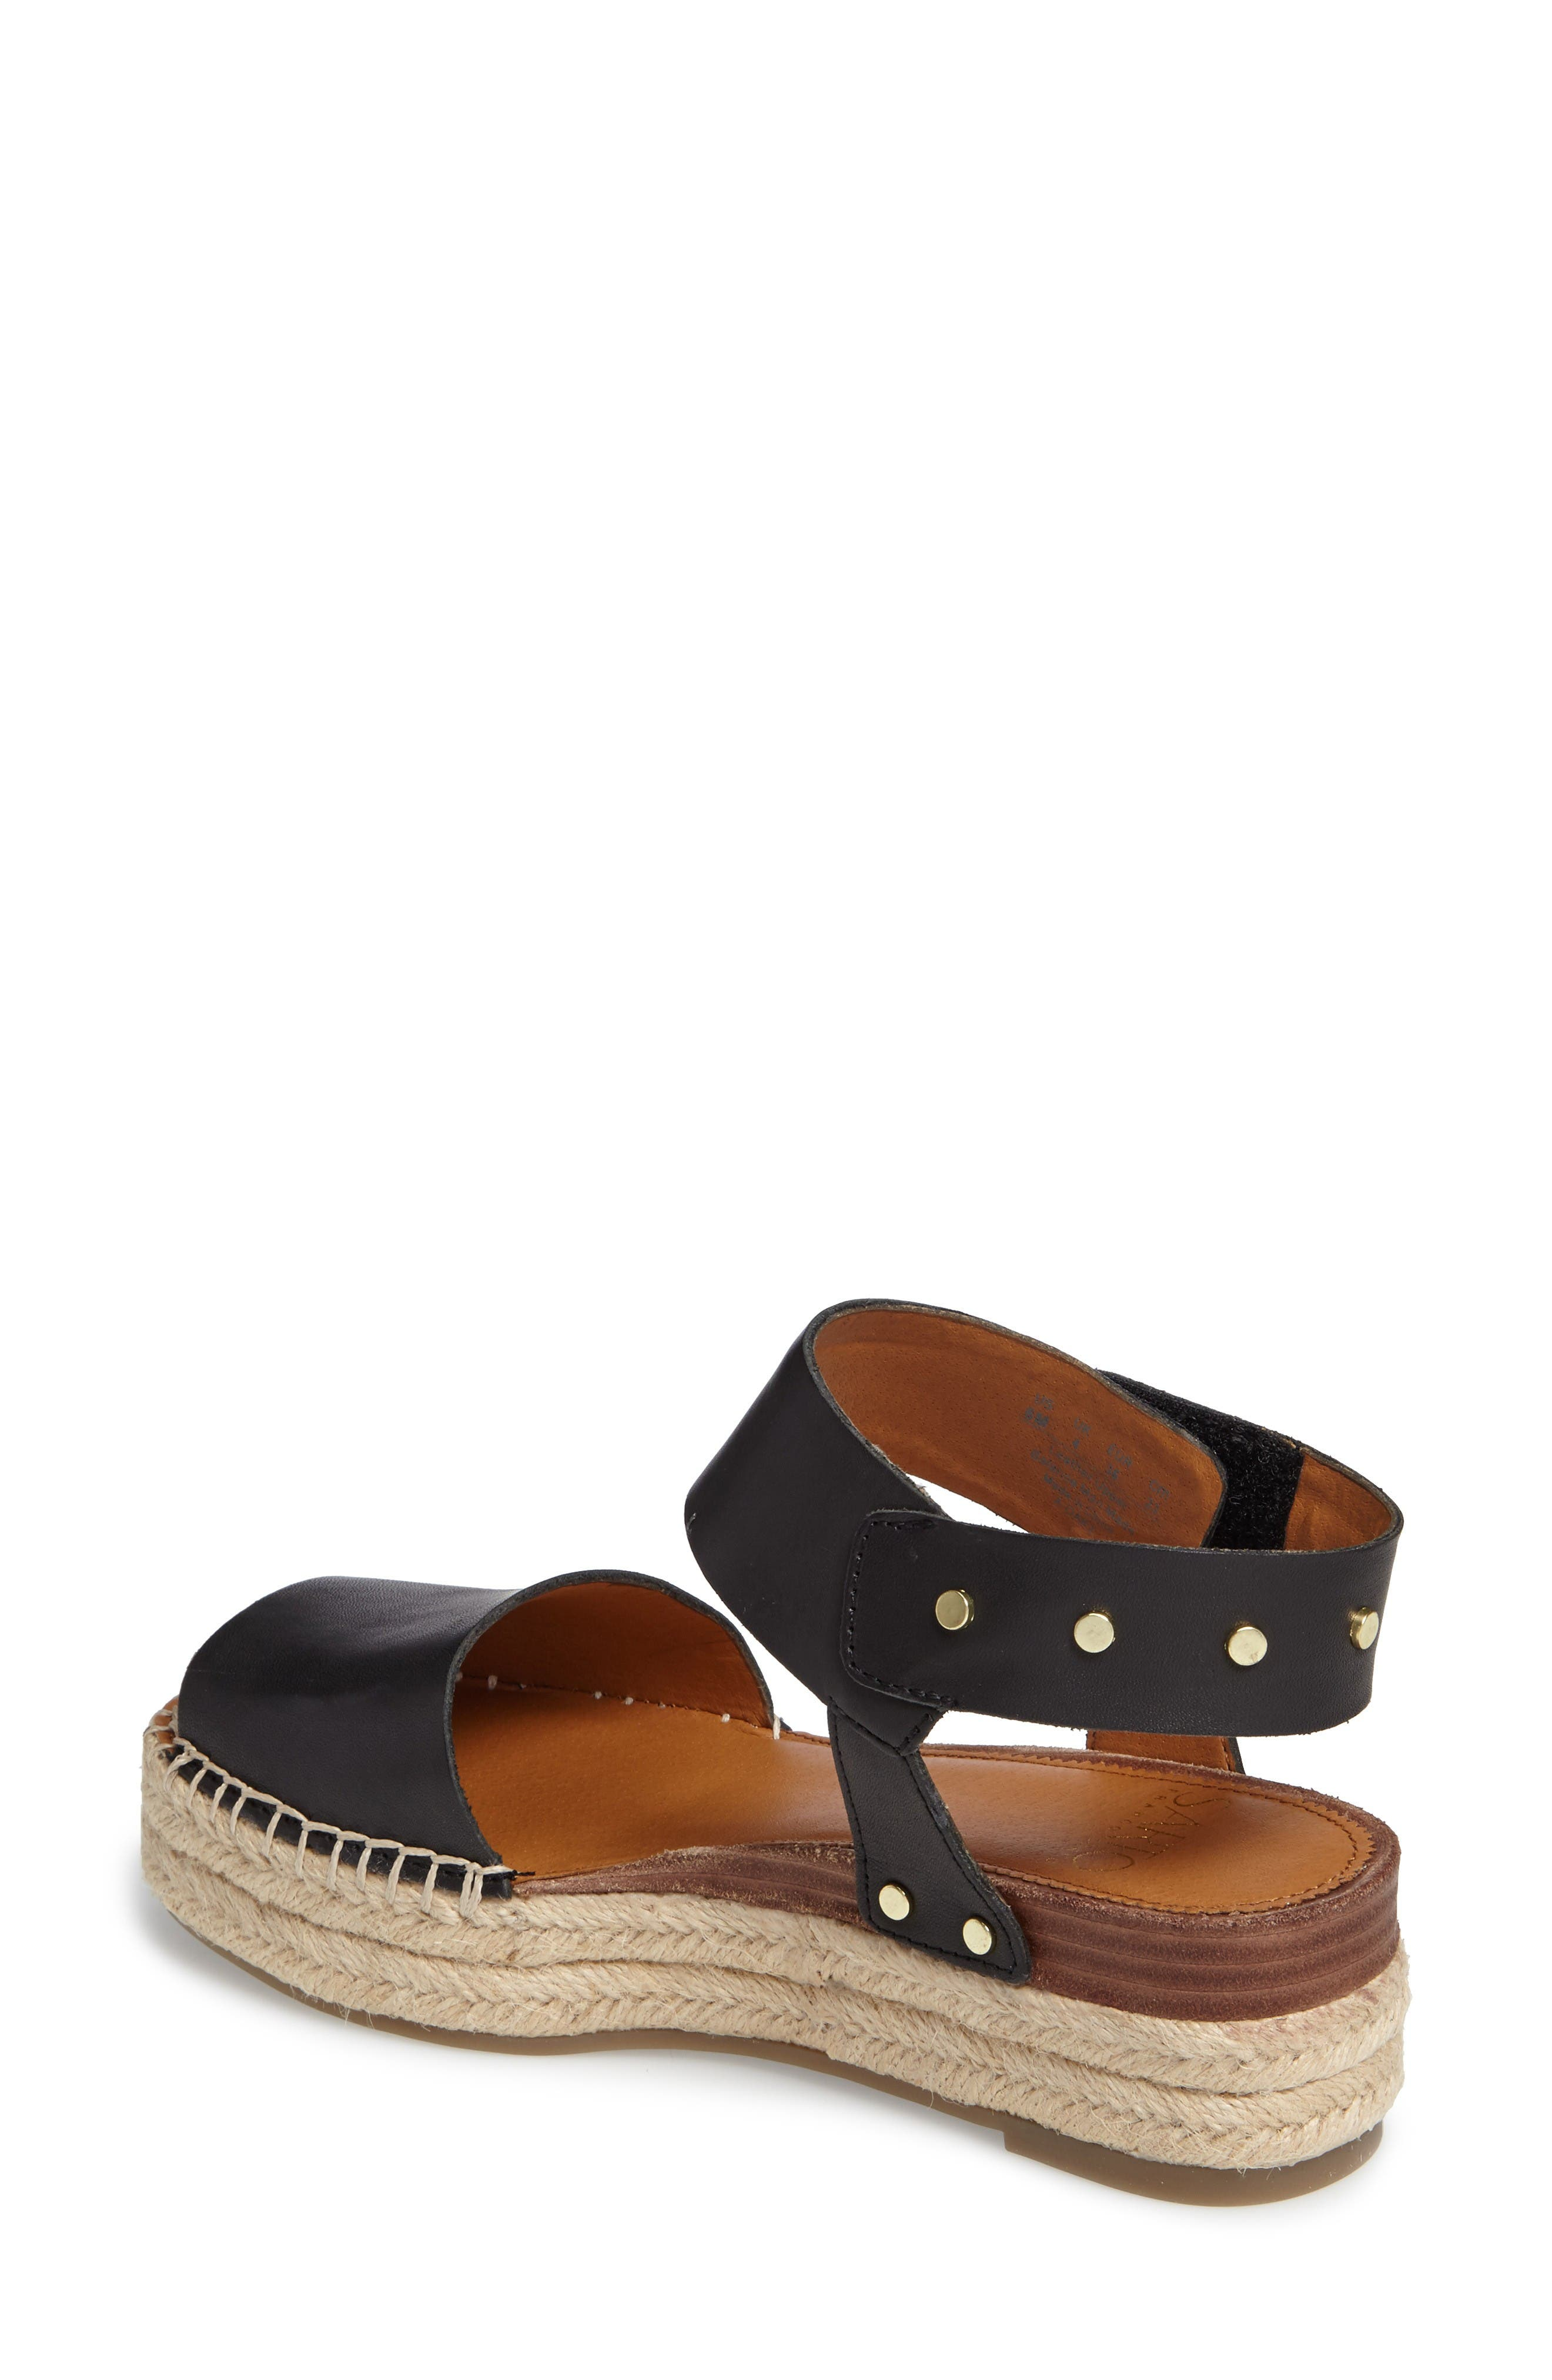 Alternate Image 2  - SARTO by Franco Sarto Oak Platform Wedge Espadrille (Women)